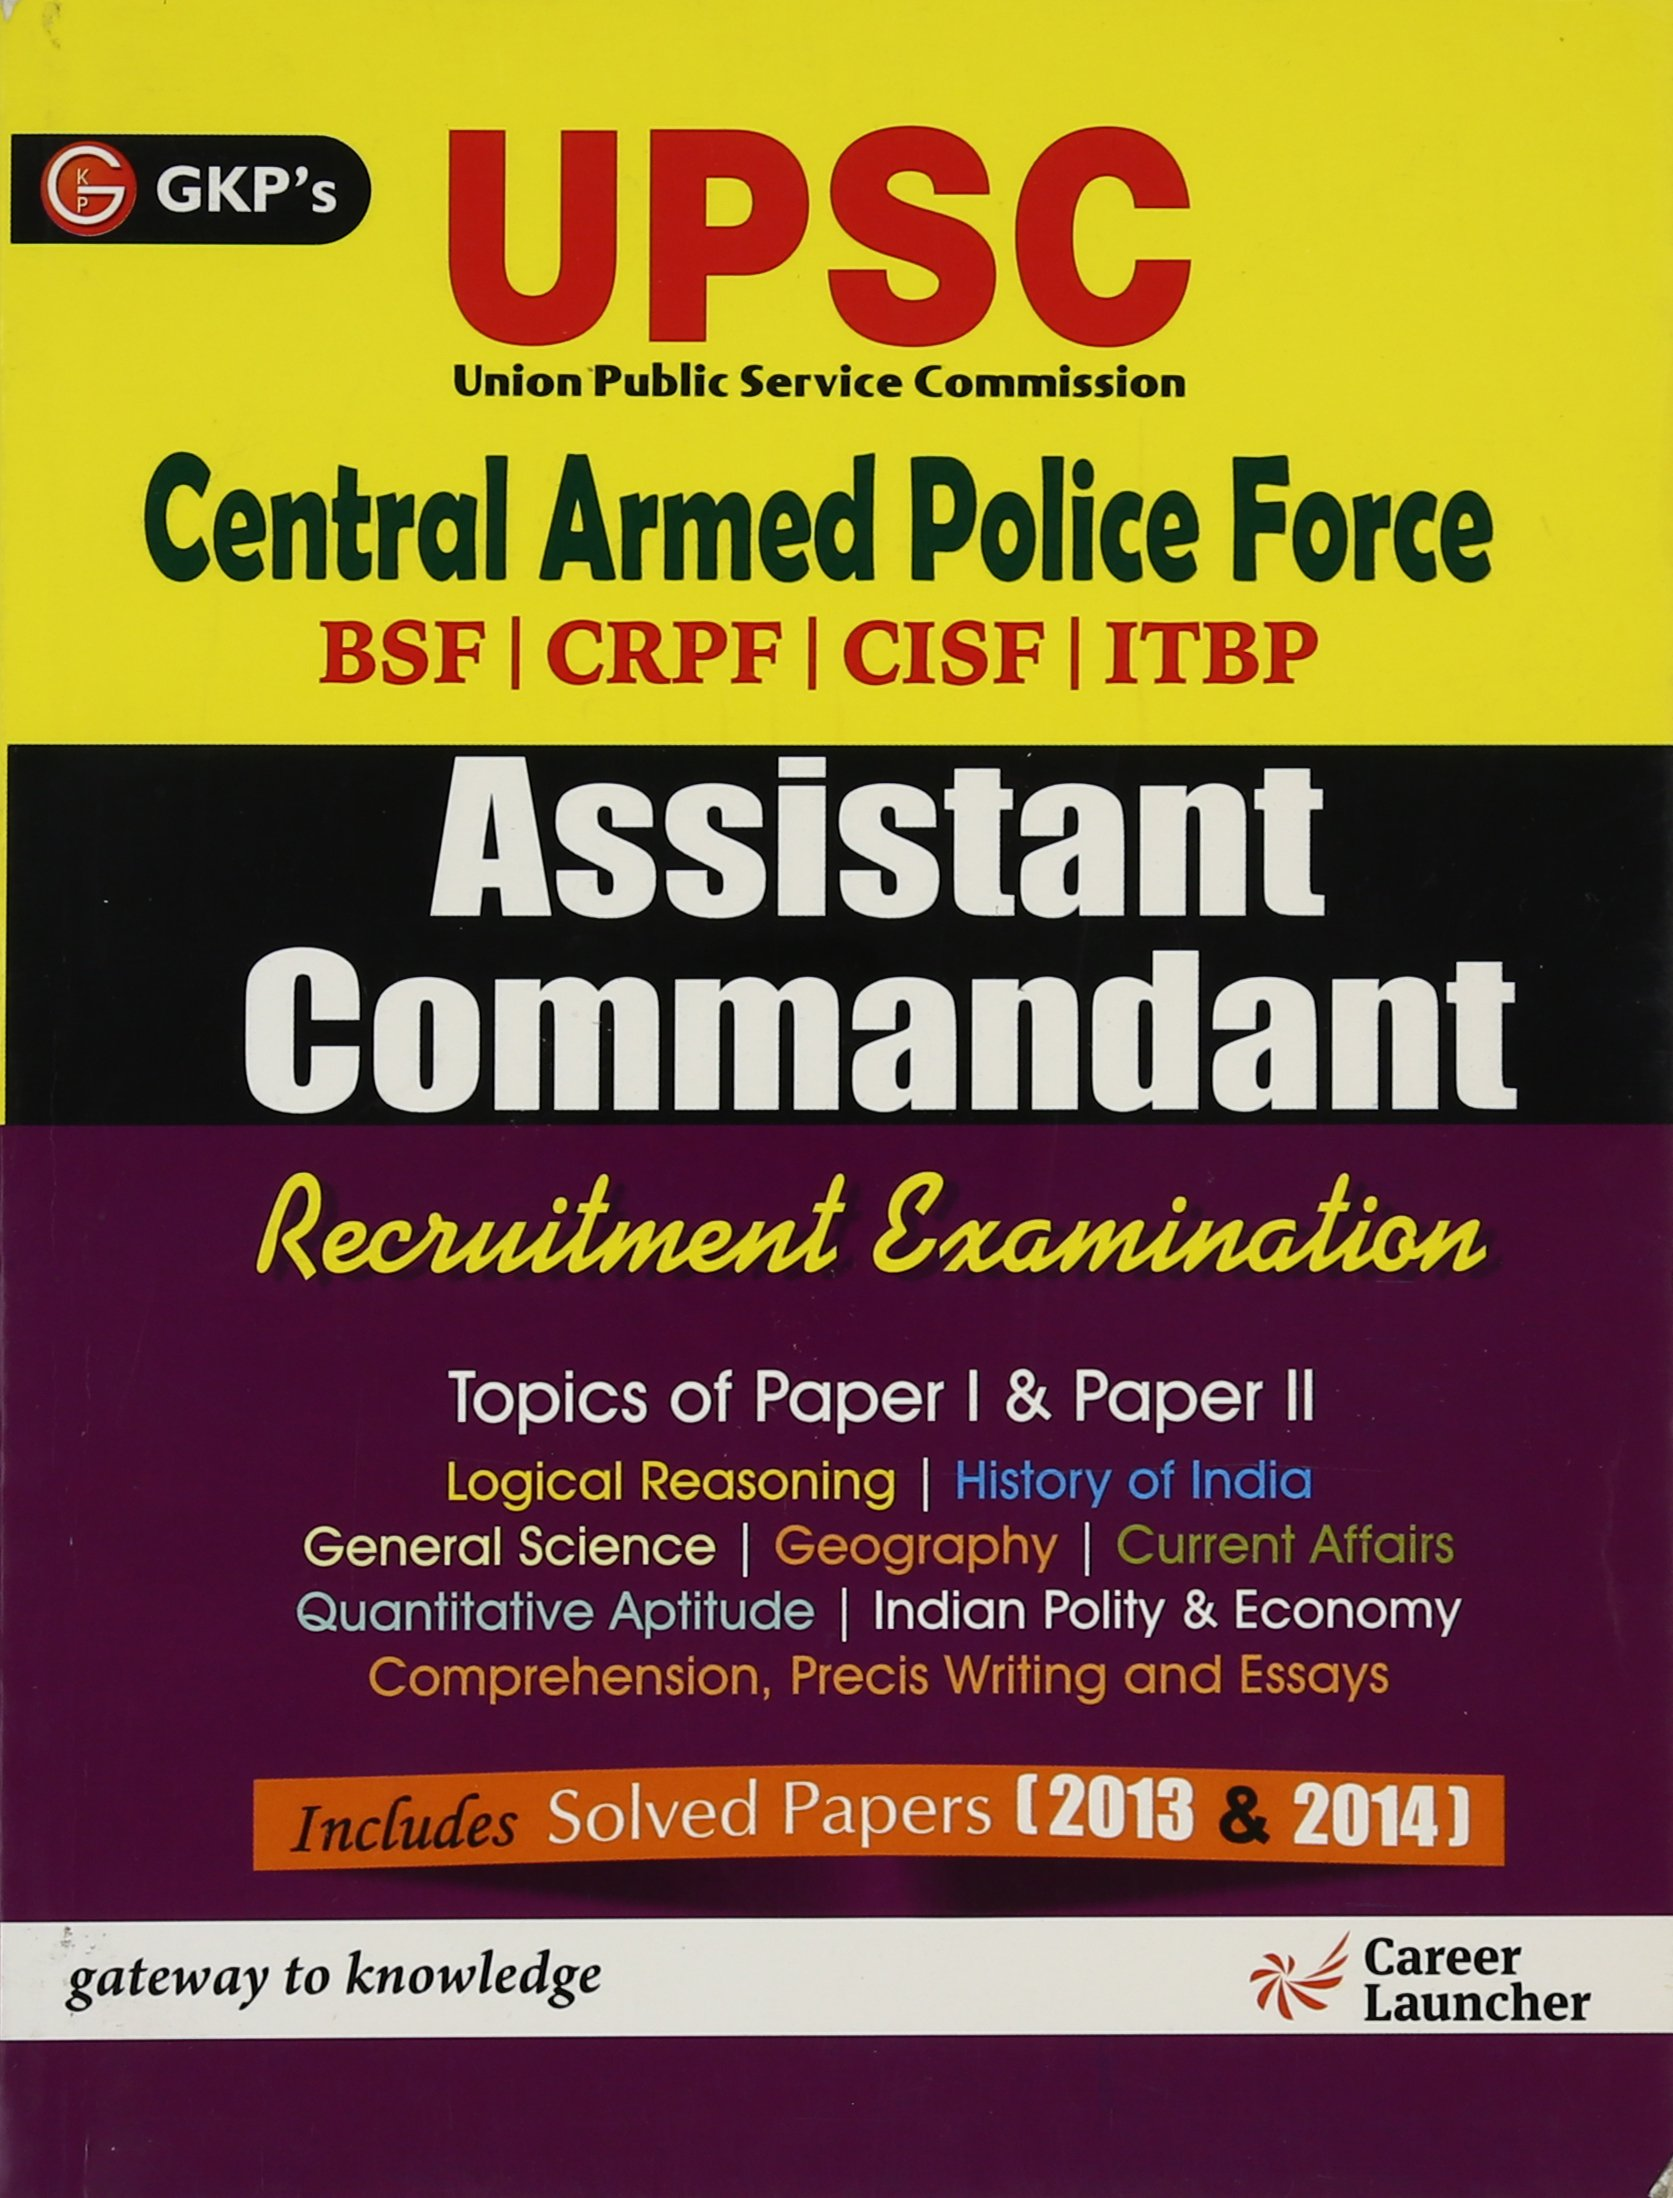 Buy Study Guide UPSC (Central Armed Police Force) Assistant Commandant  Recruitment Examination 2014 Paper 1 & Paper 2 Includes Solved Papers 2013  - 14 Book ...